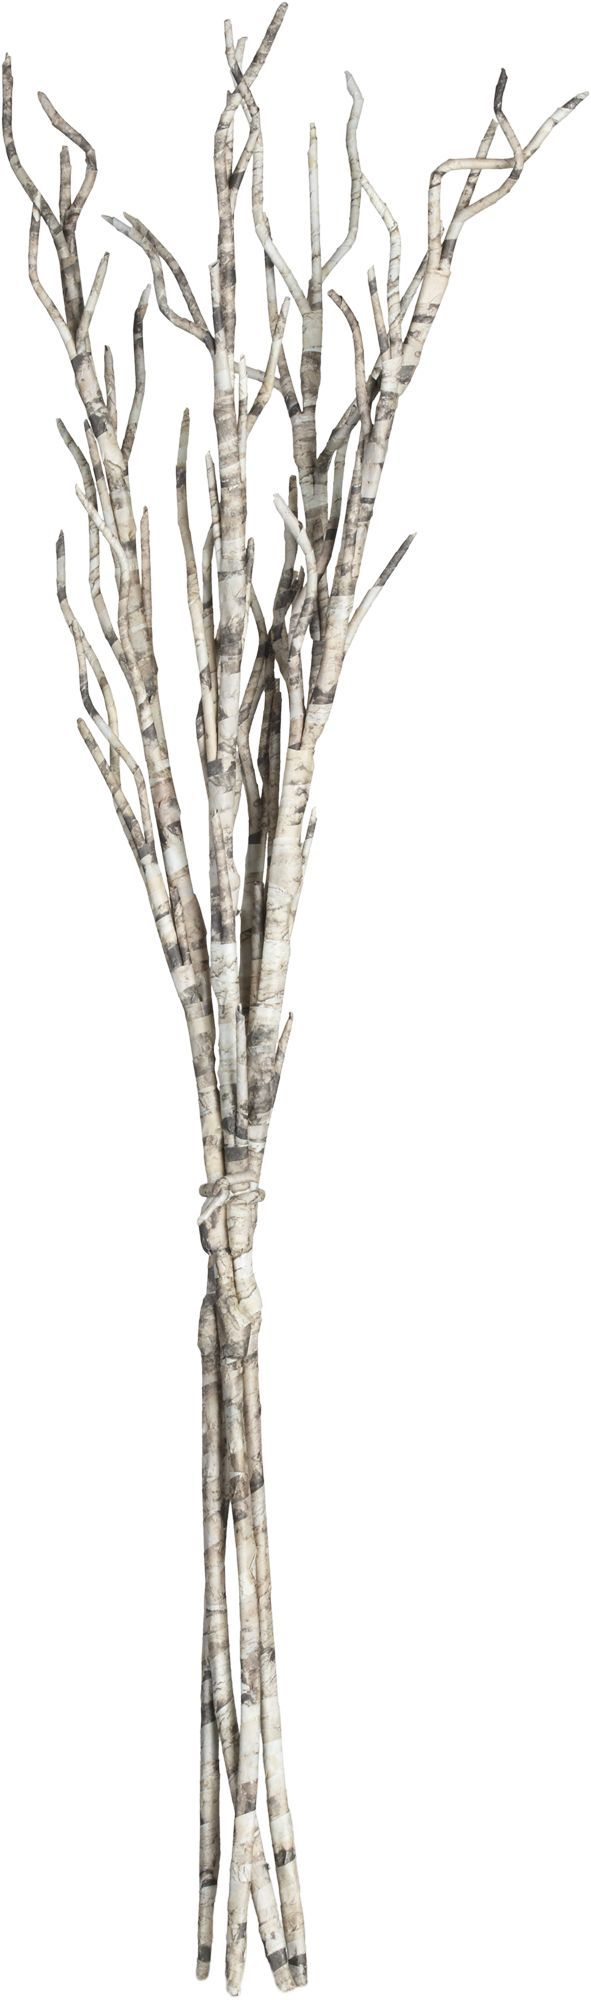 Paper twig branches set of 4 tall vases outdoors and display these stylized twig branches bring the outdoors inside the black and white colour scheme is reviewsmspy